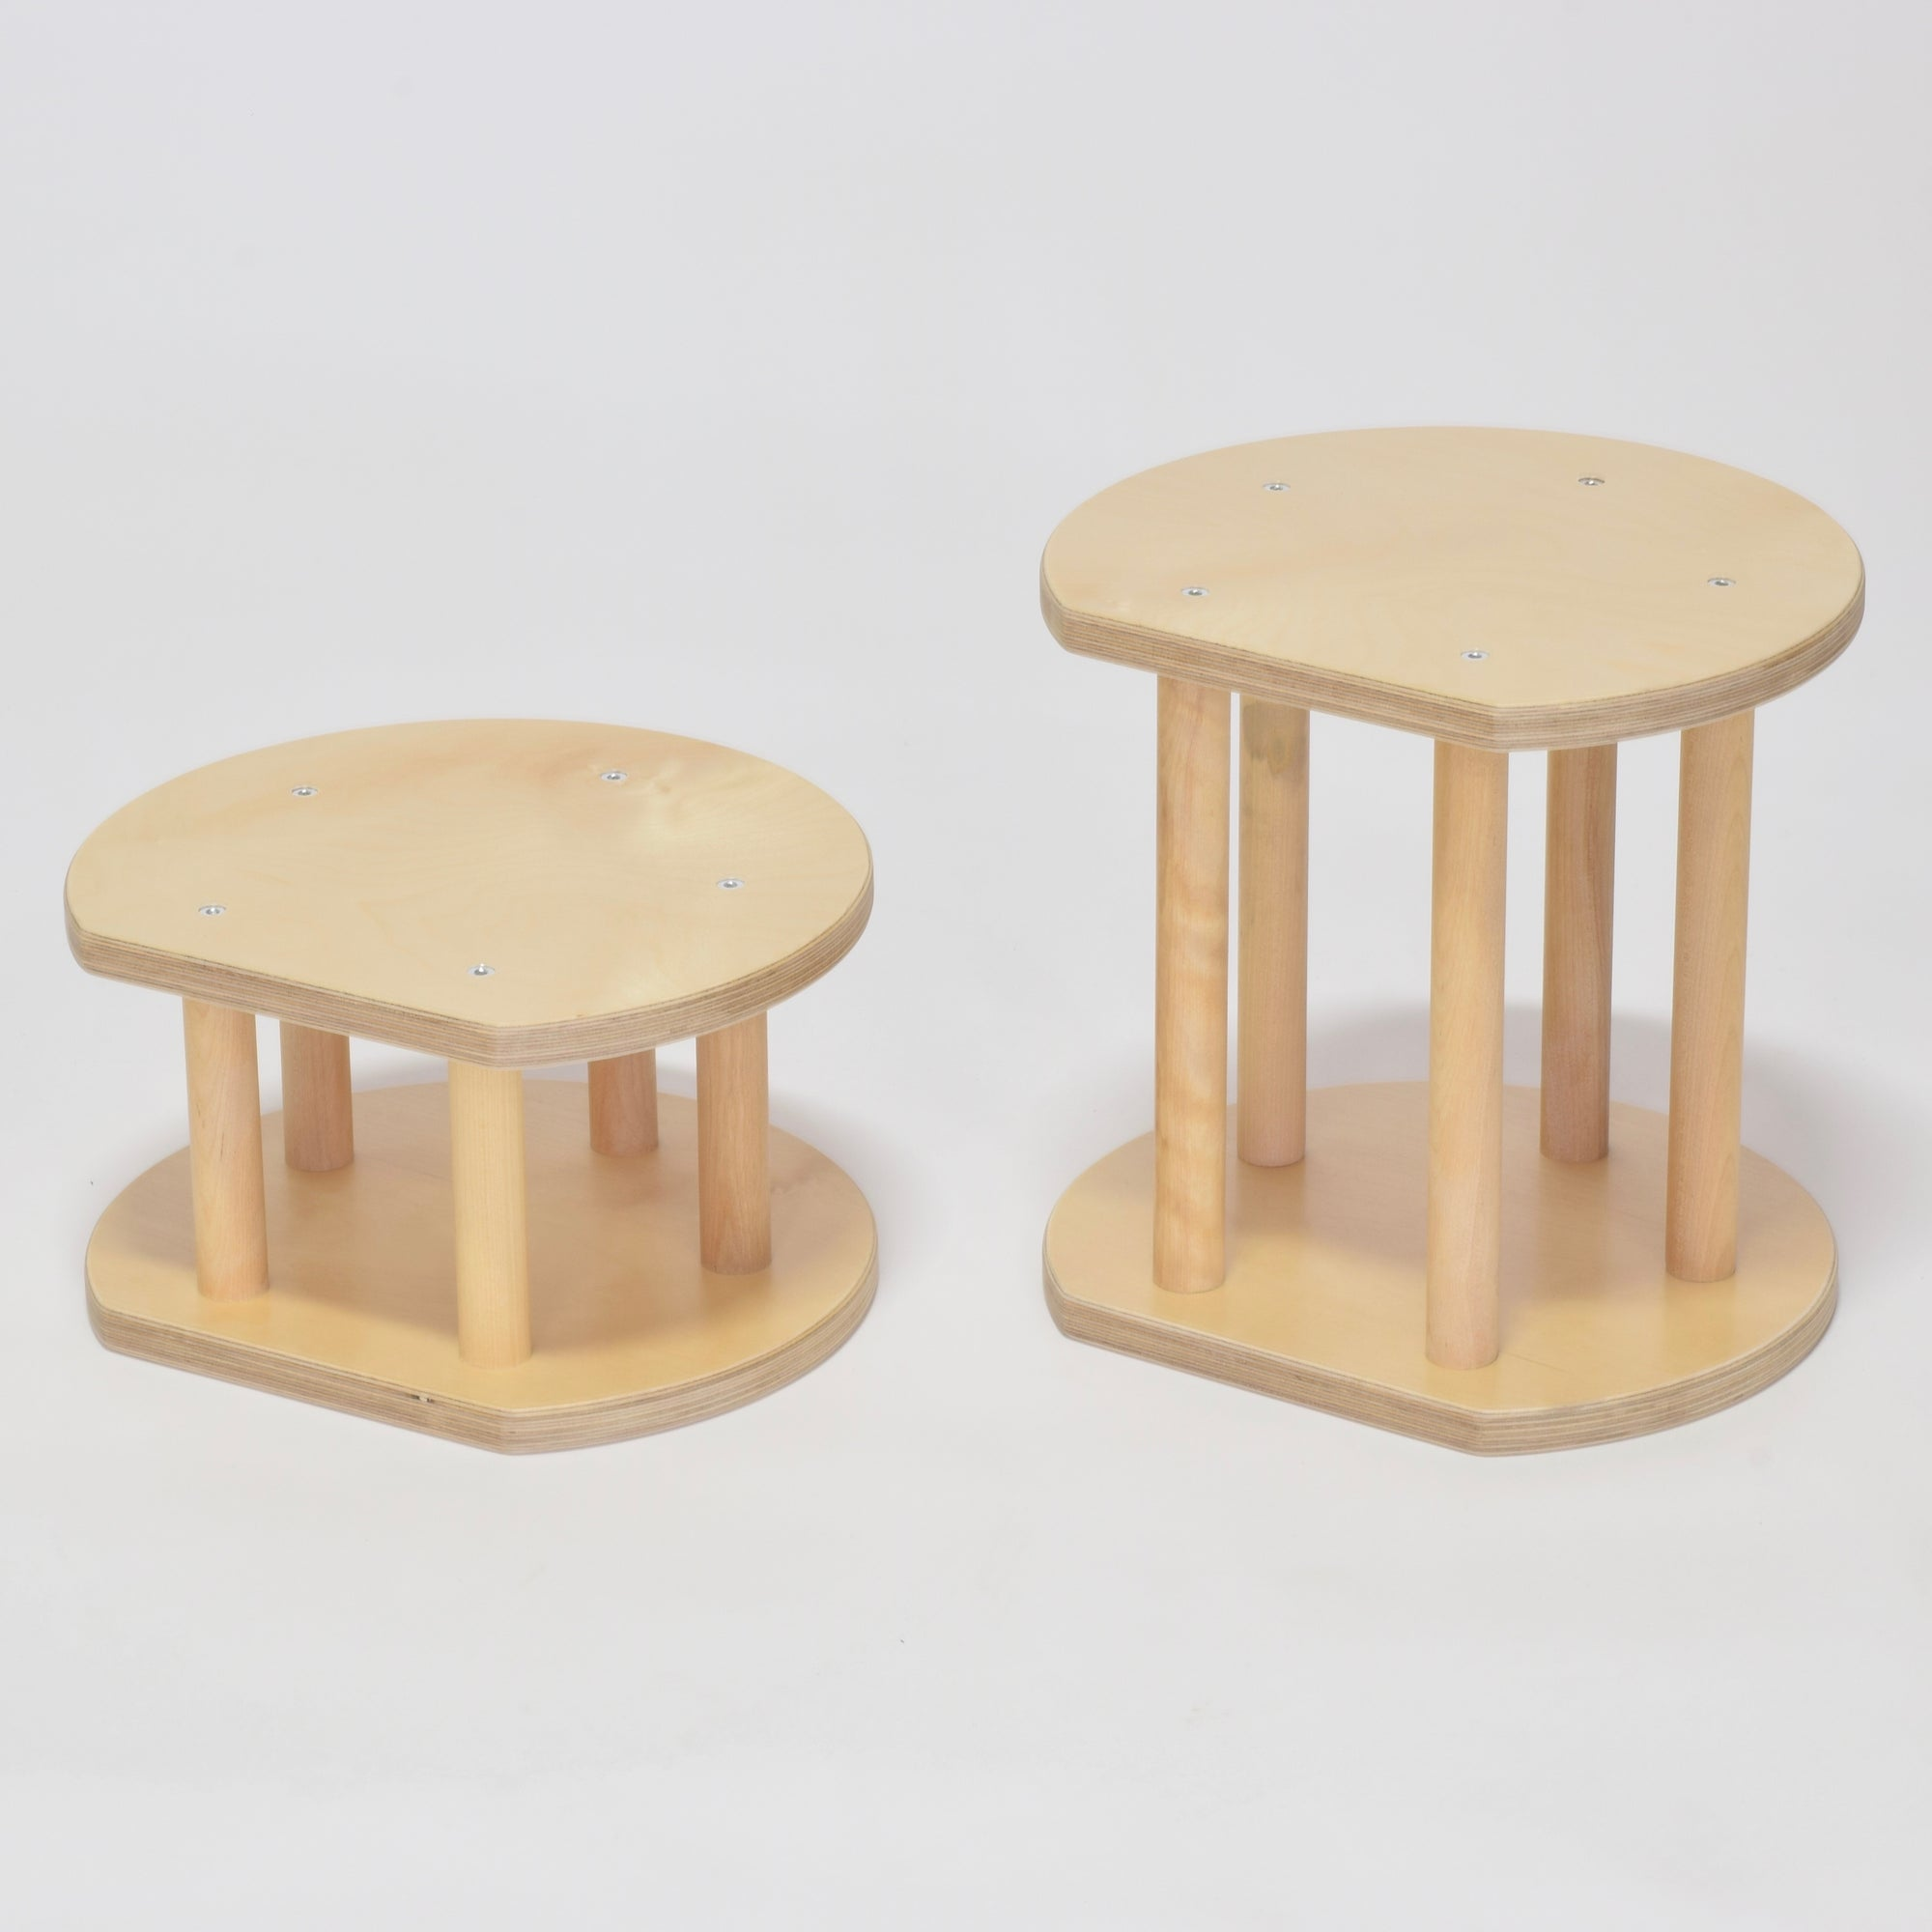 RAD Grow Stool inspired by Magda Gerber stool